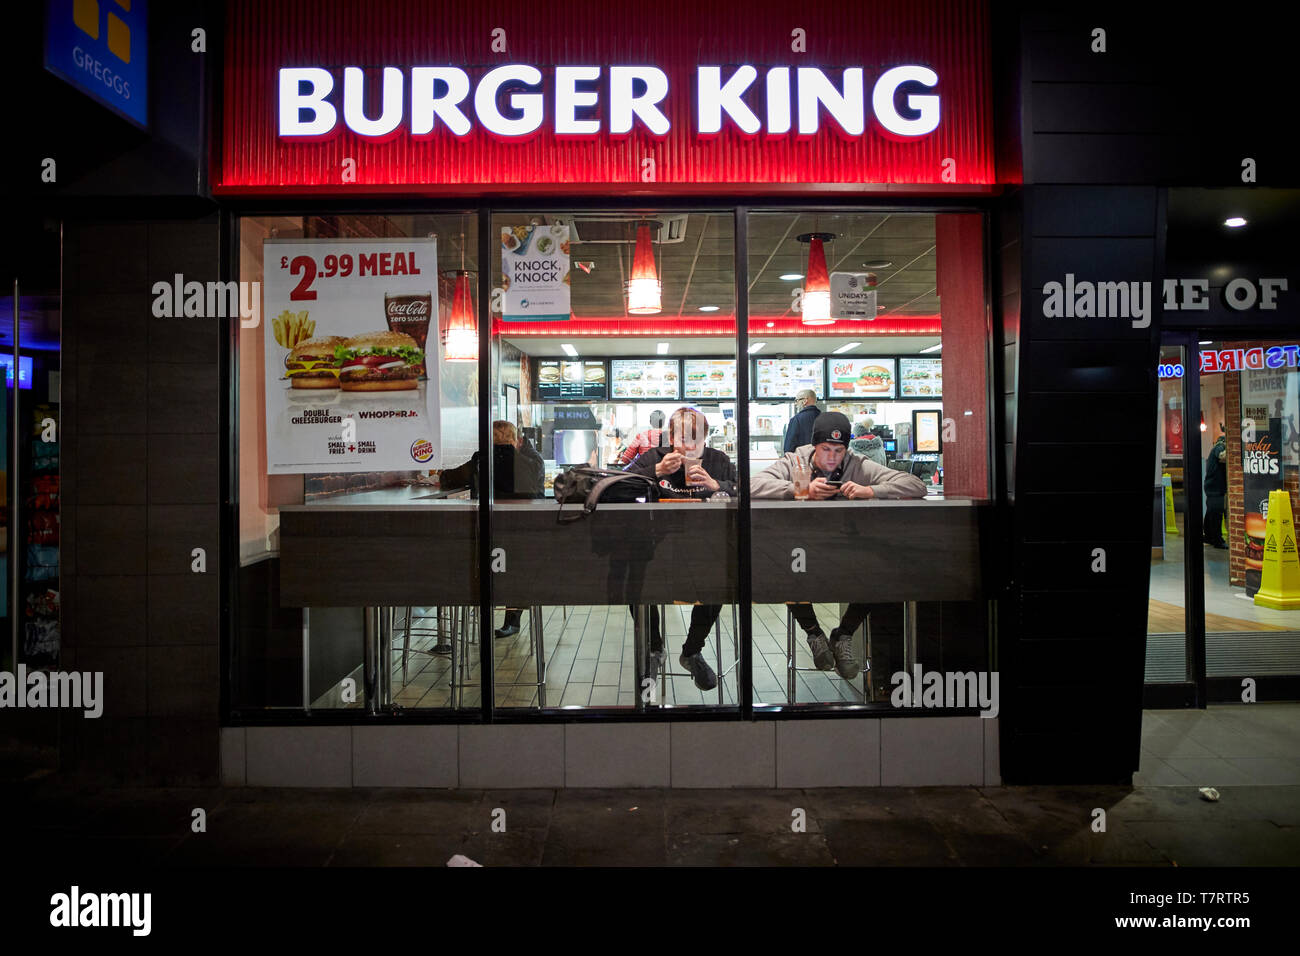 Iconic Newcastle upon Tyne lads eating in Burger King - Stock Image